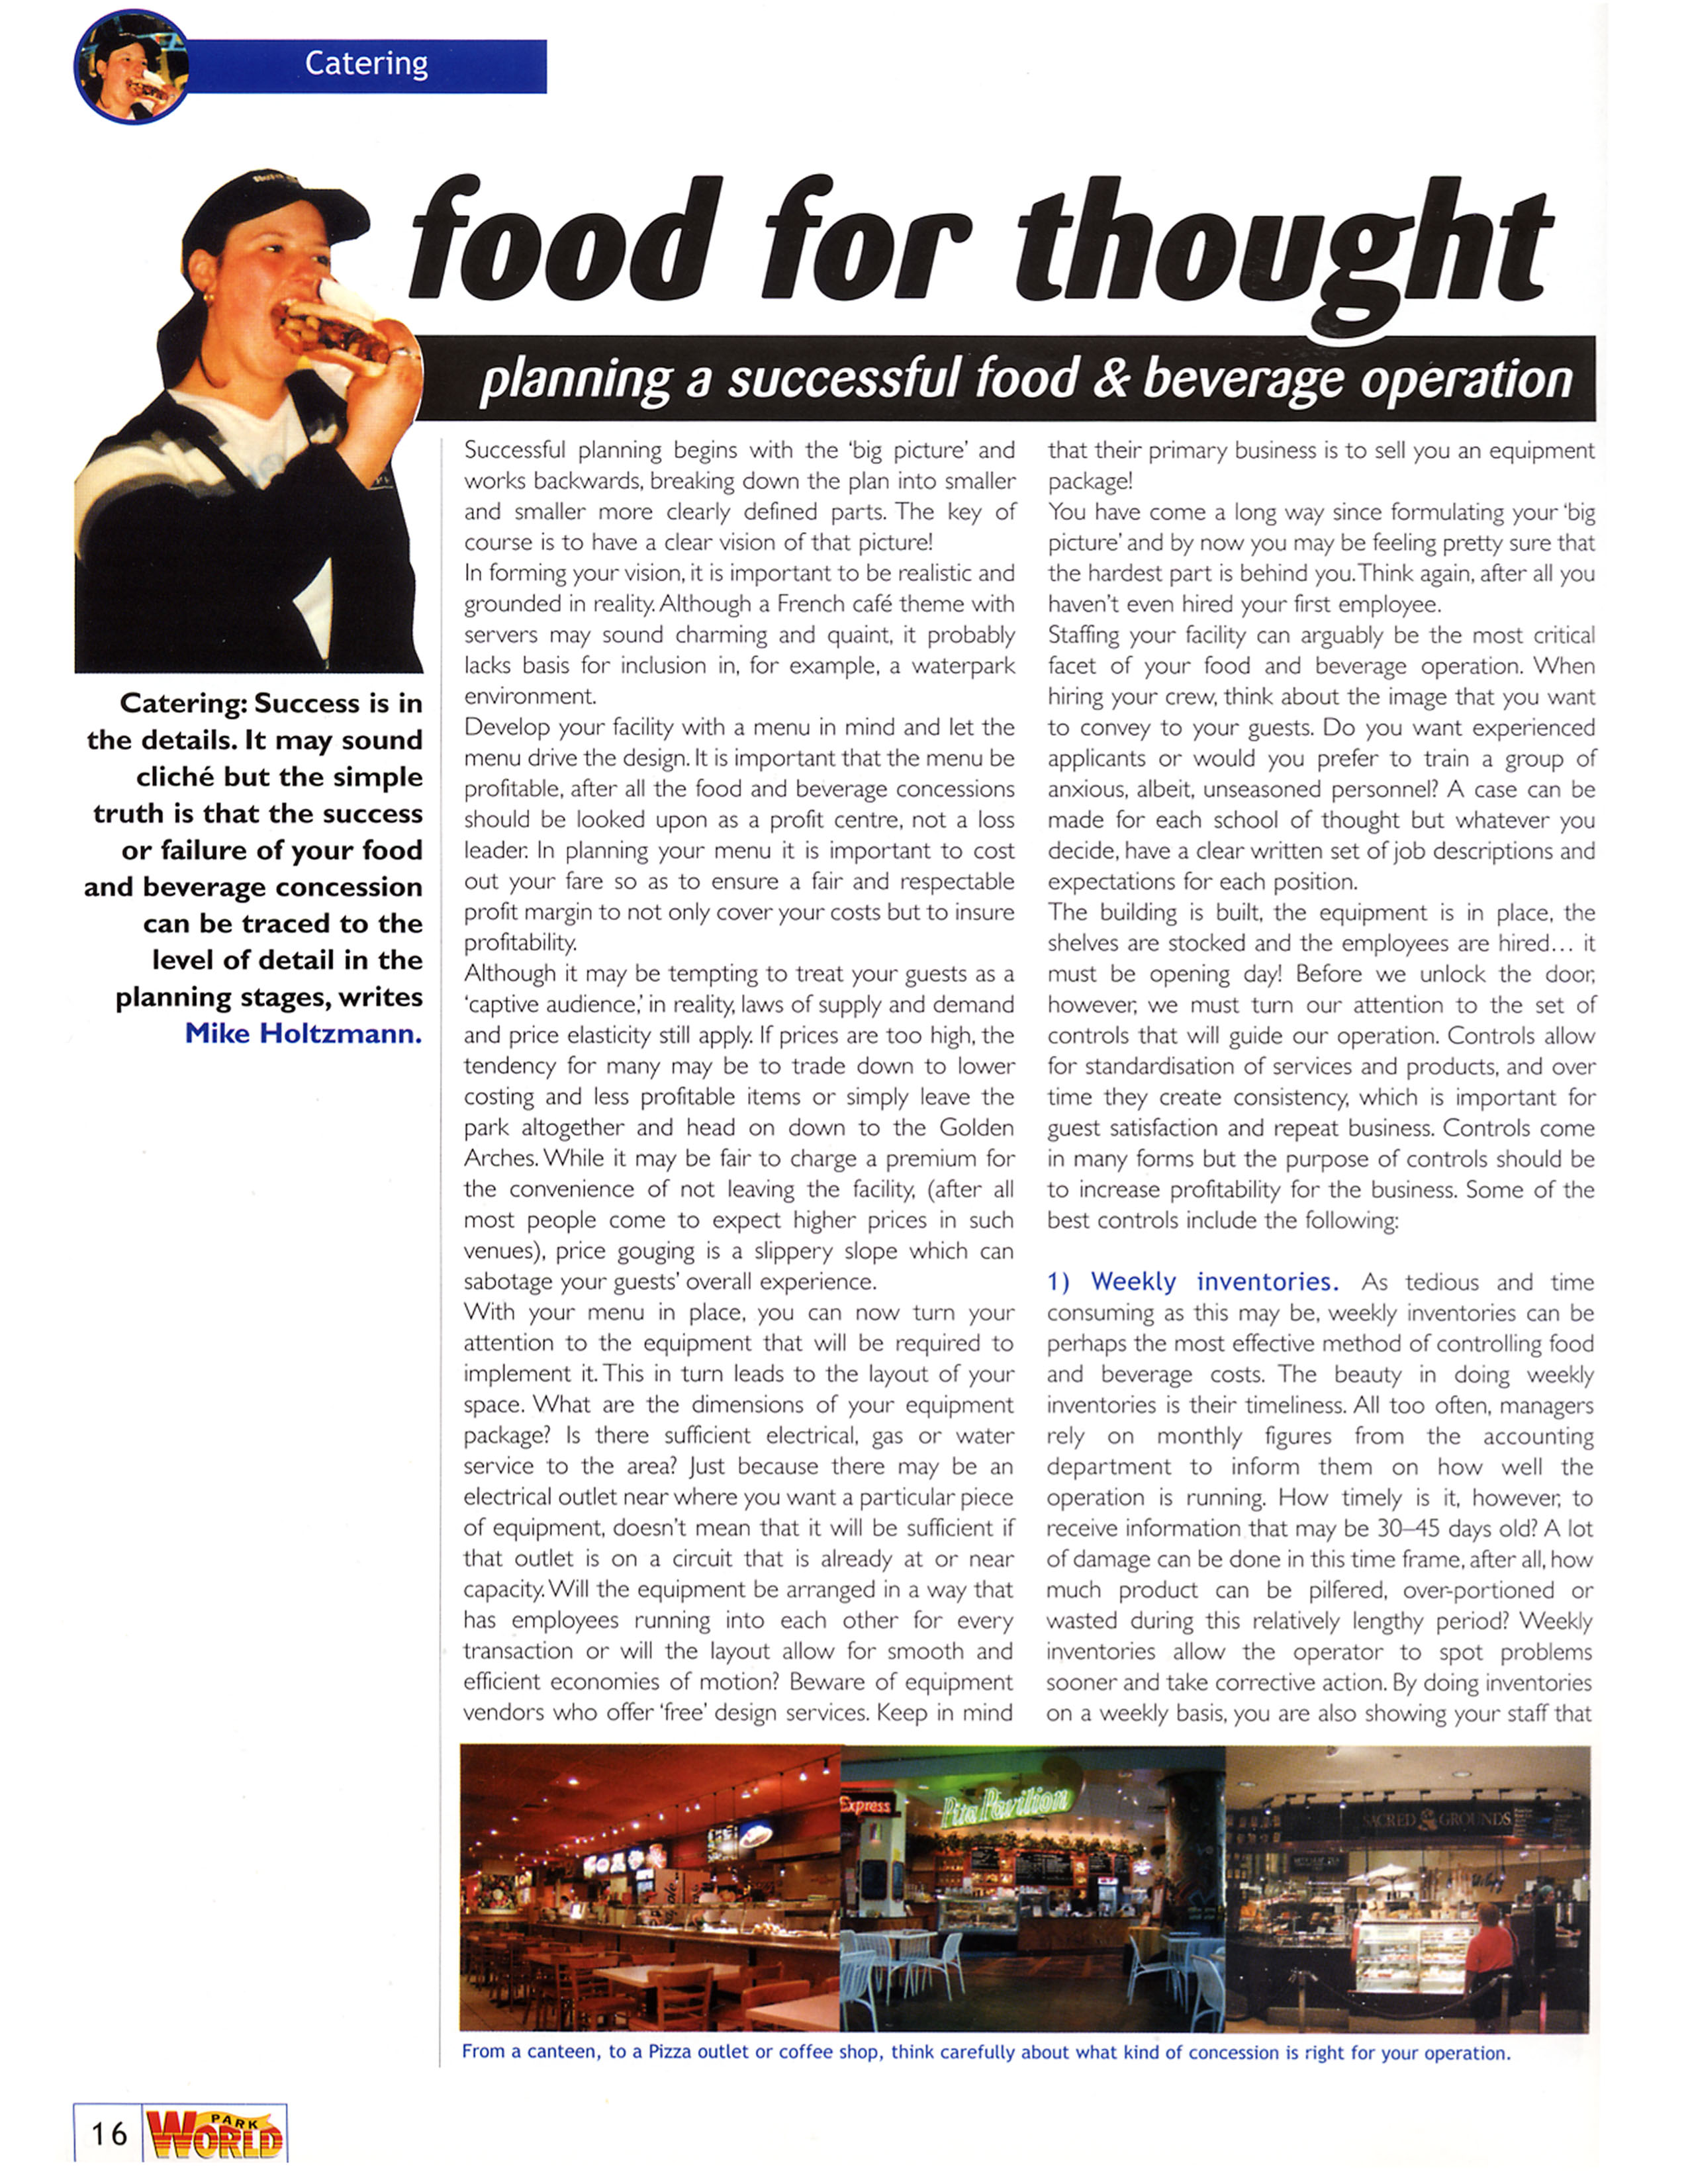 food for thought kitchen design and food and beverage consulting